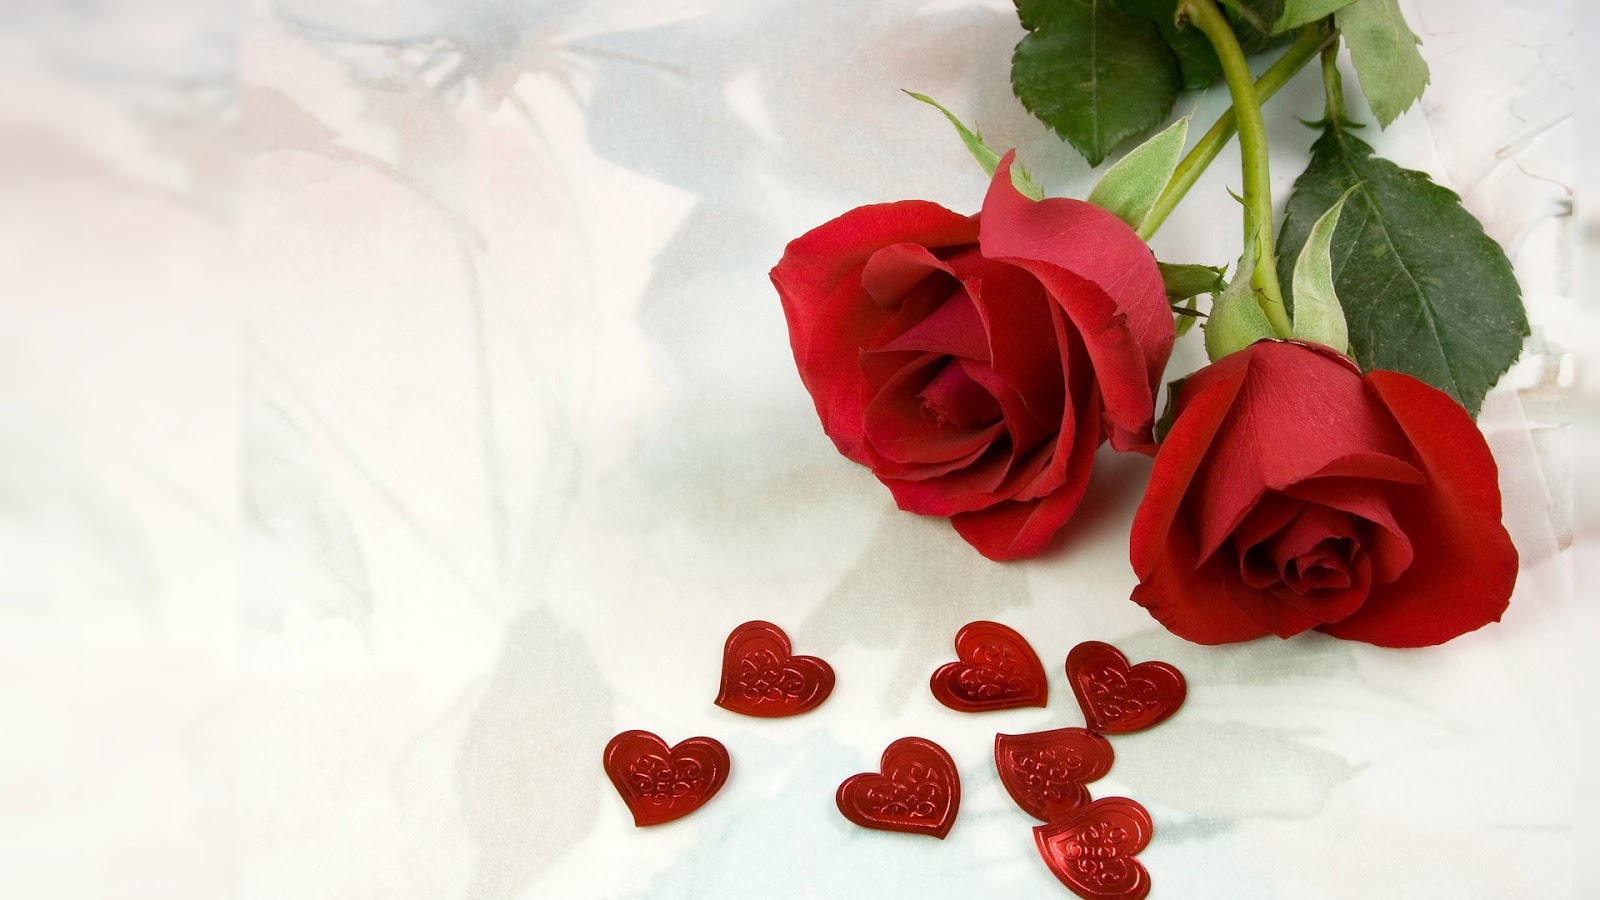 red roses most popular rose rose wallpapers beautiful rose red 1600x900